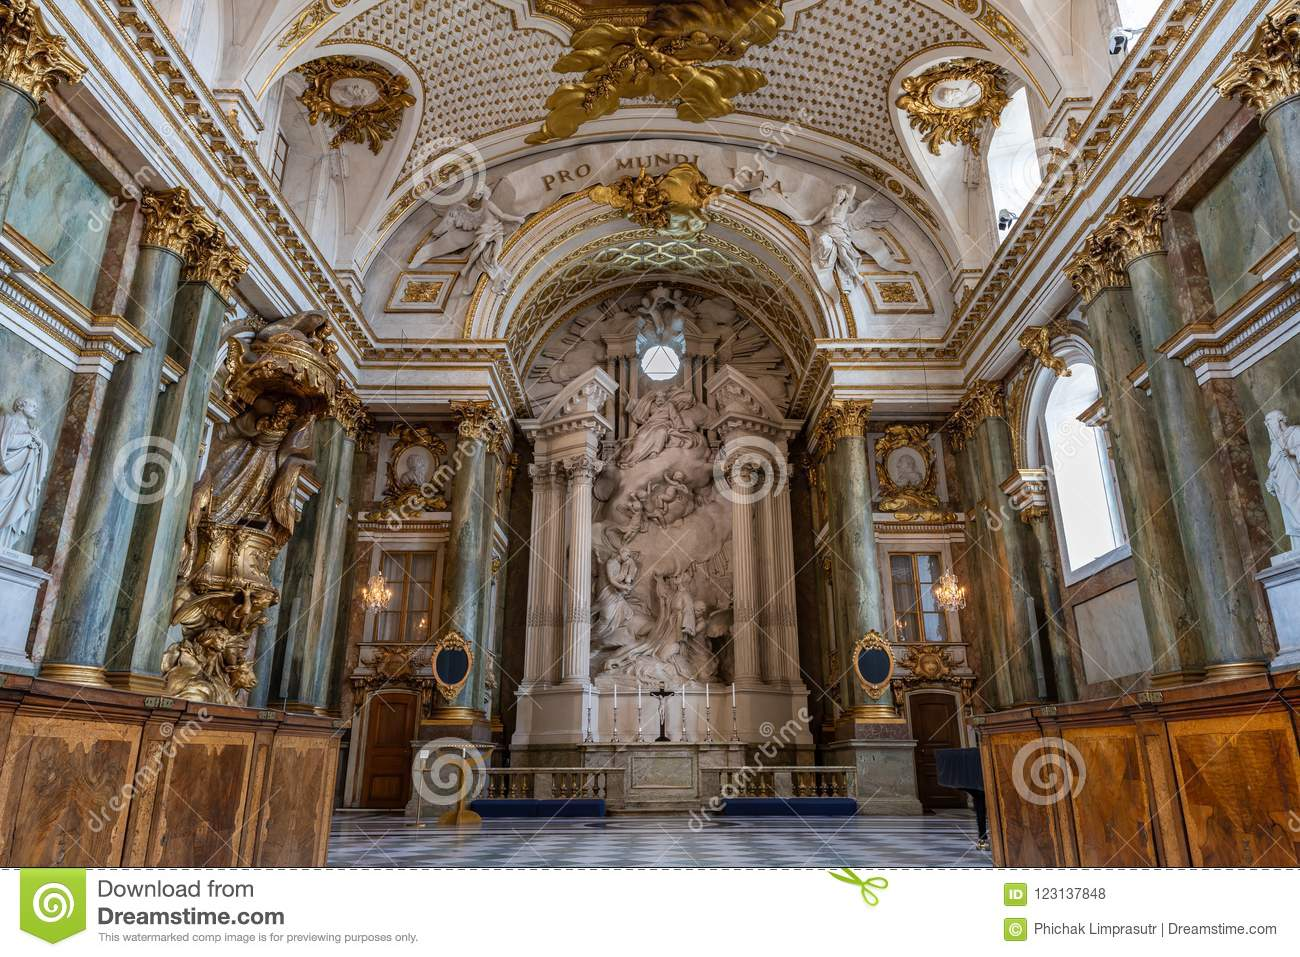 Stockholm sweden july 7 2018 the beautiful interior of royal chapel in the sweden royal palace